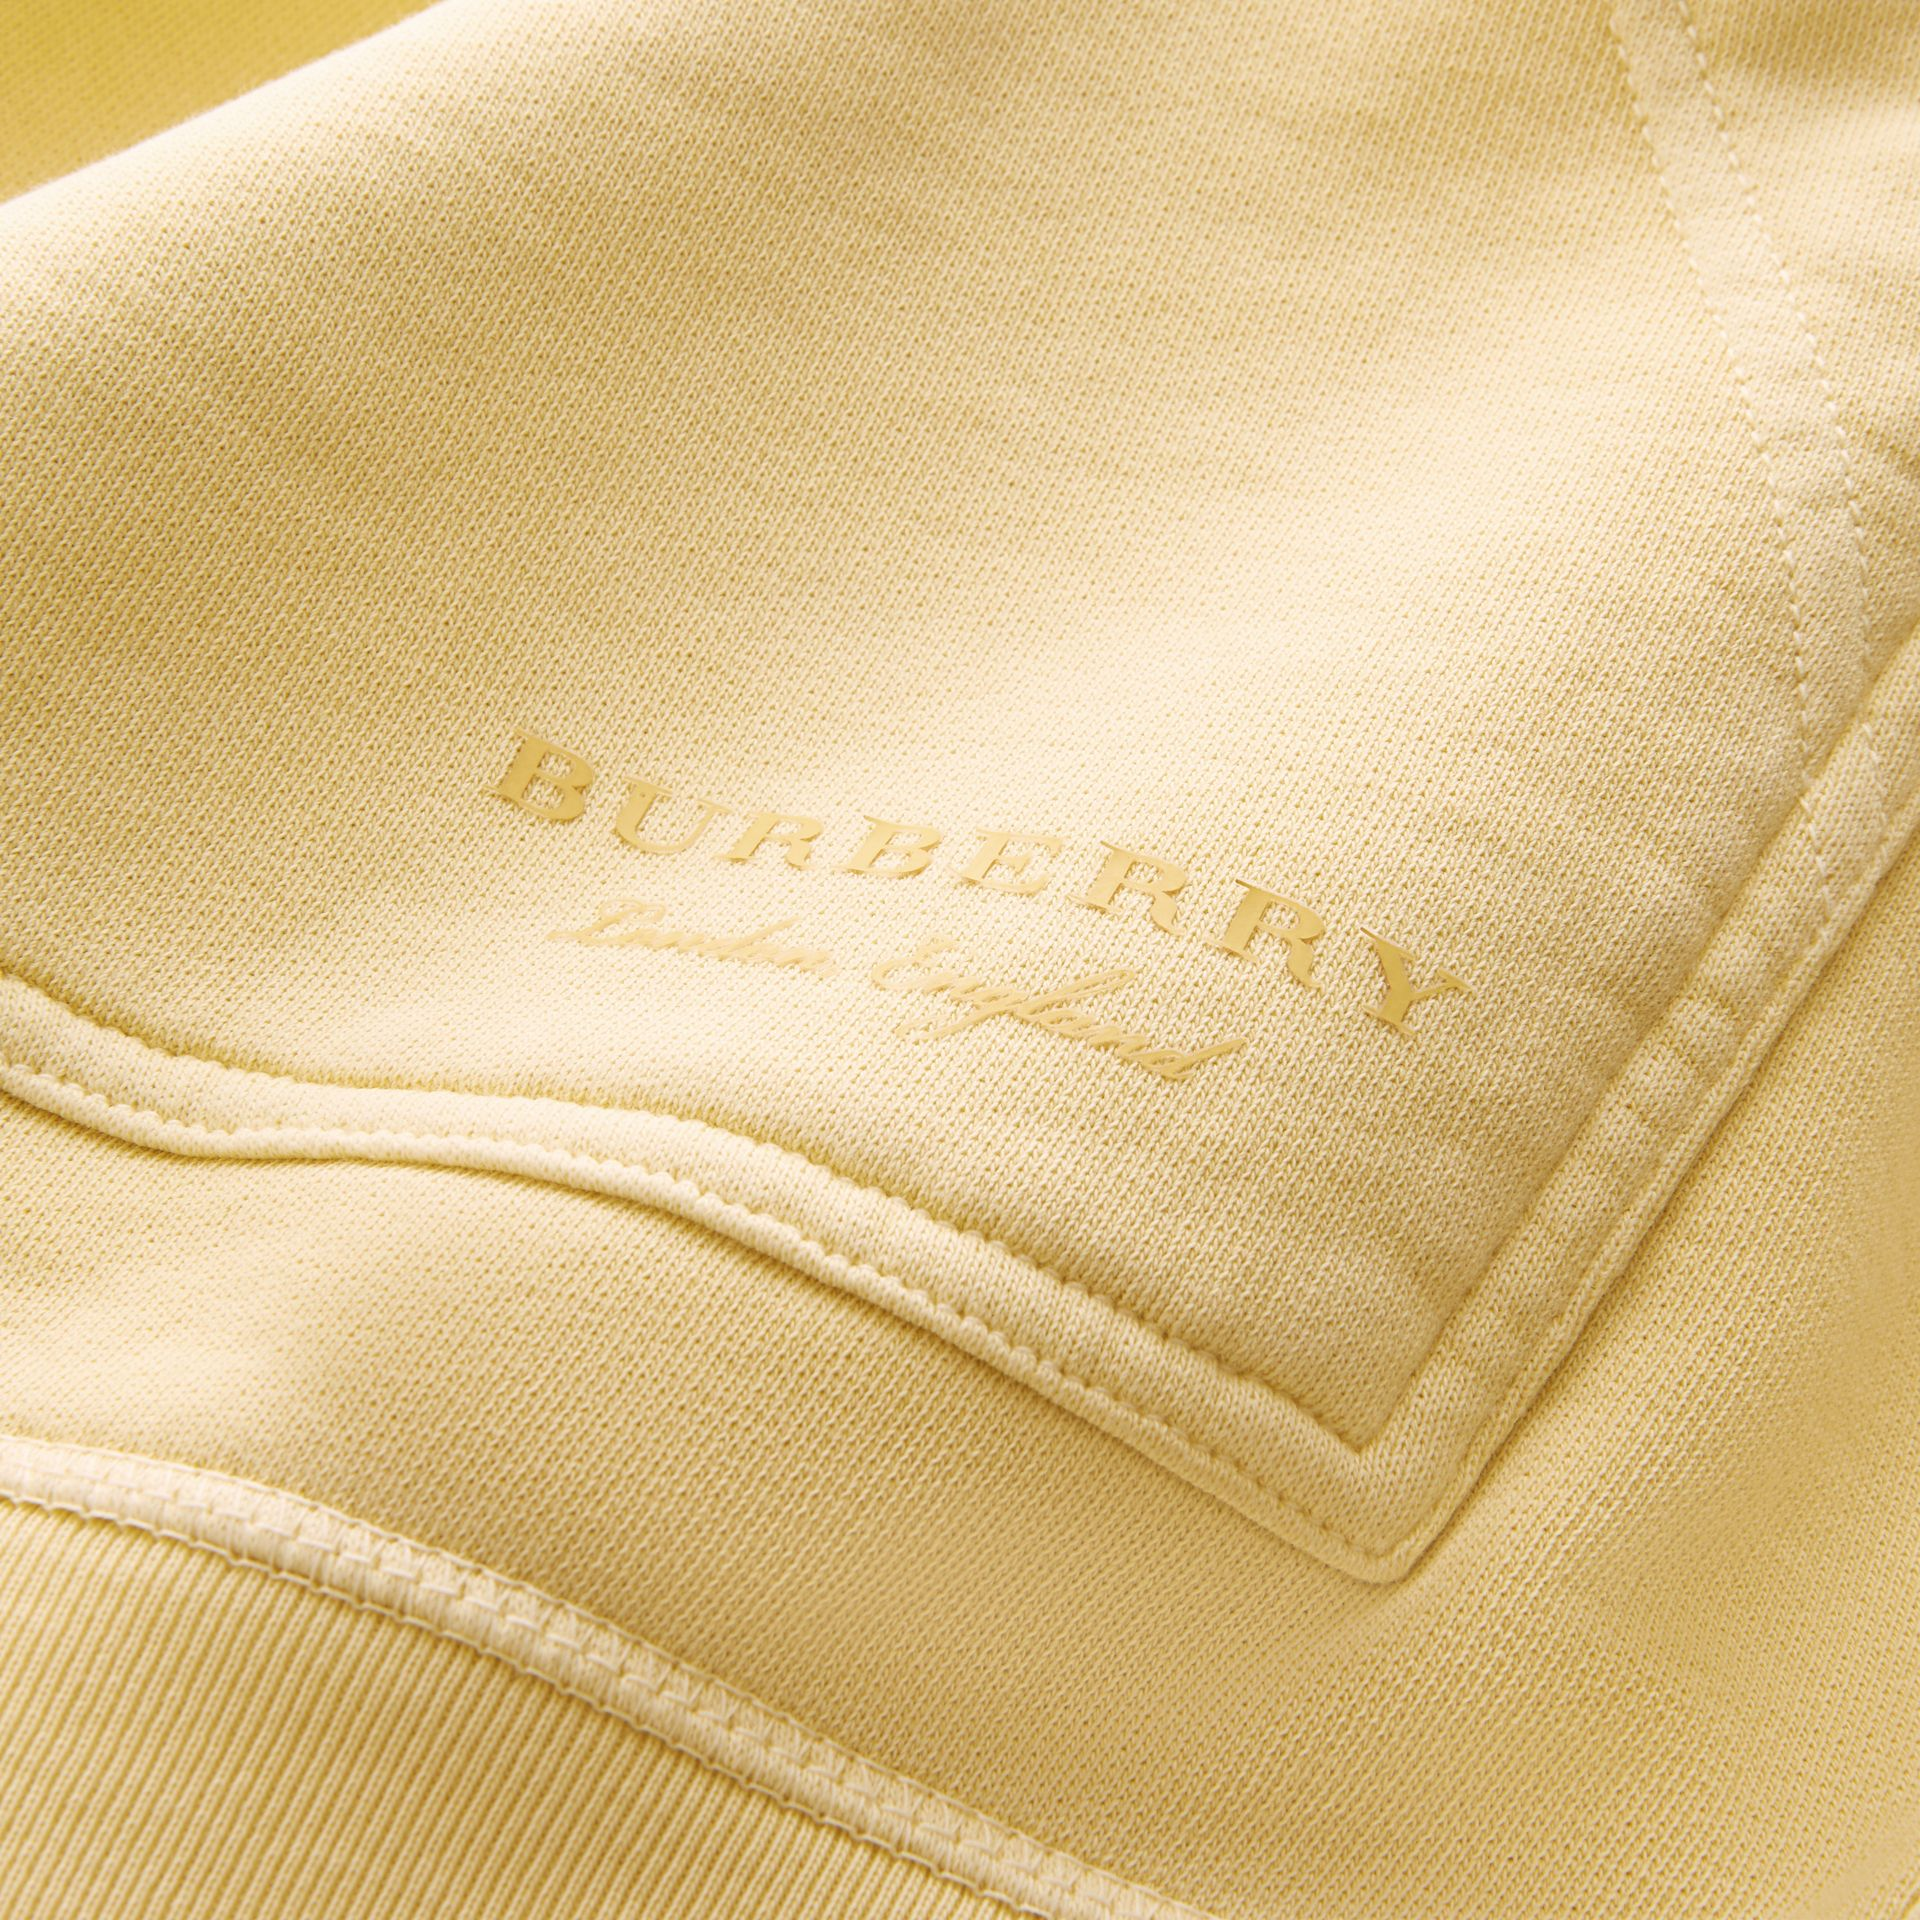 Unisex Pigment-dyed Cotton Oversize Sweatshirt in Pale Yellow - Men | Burberry - gallery image 2